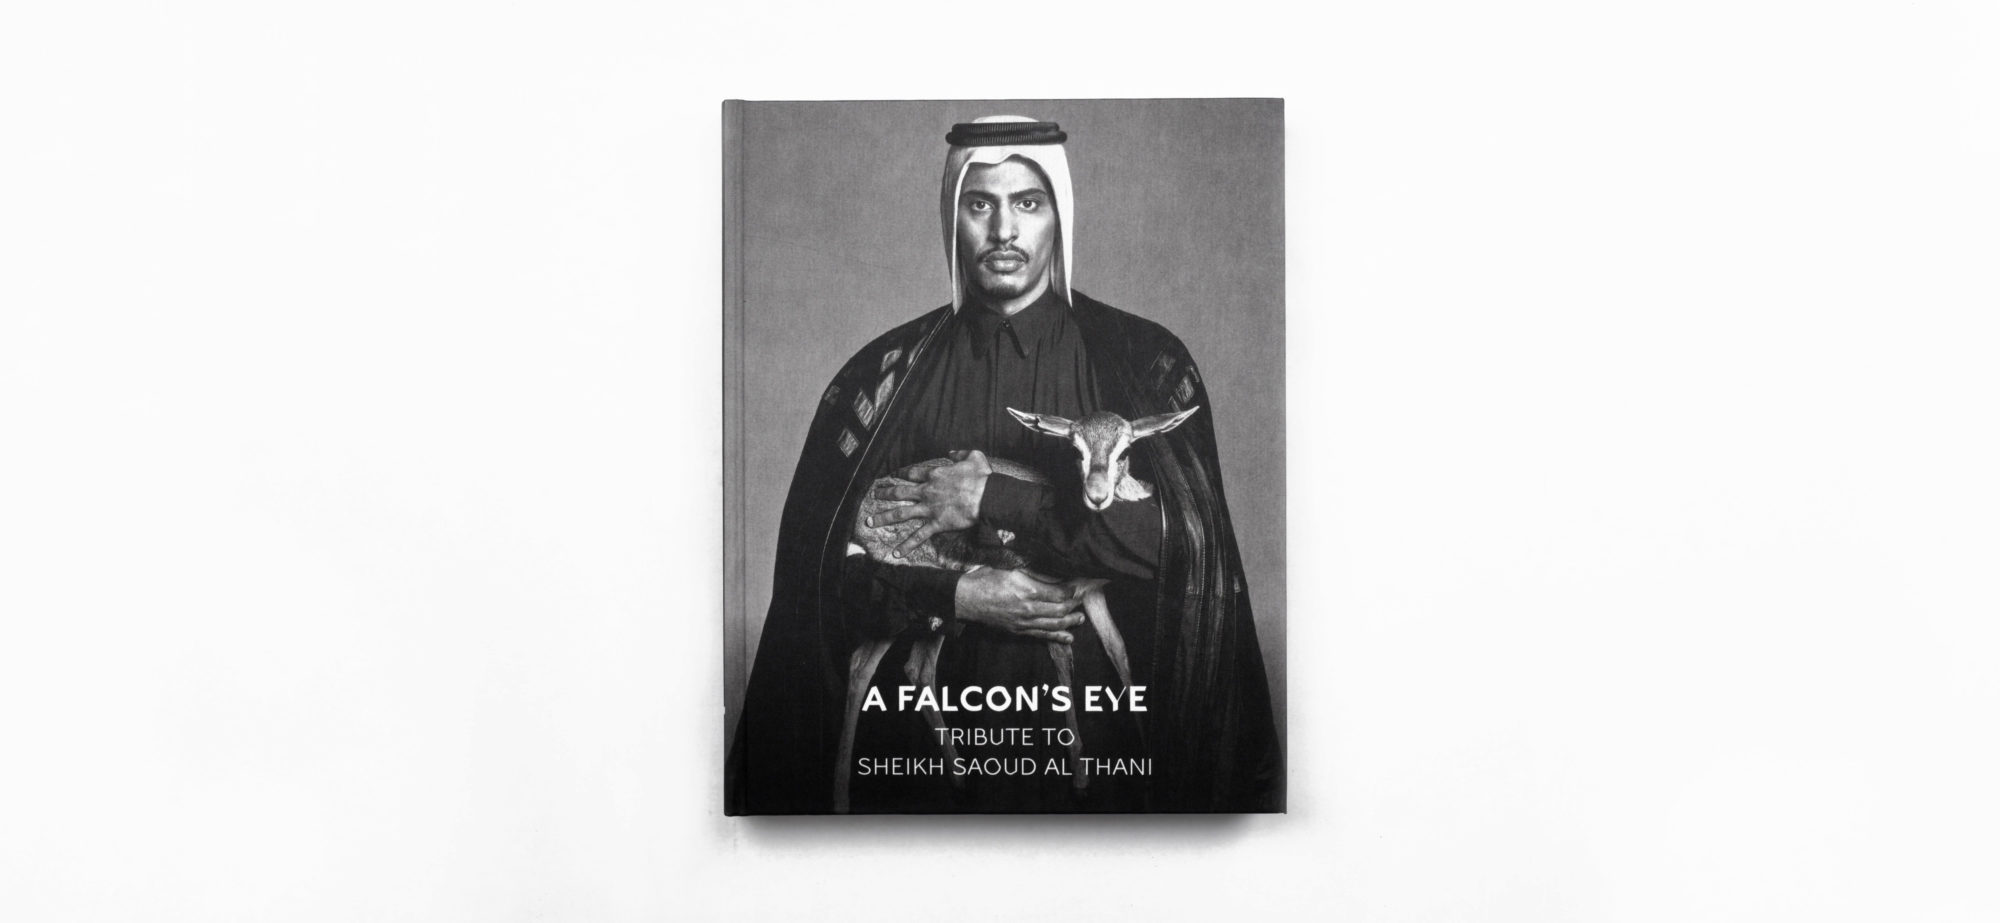 A falcon's eye : tribute to sheikh Saoud al Thani - François-Marie Banier